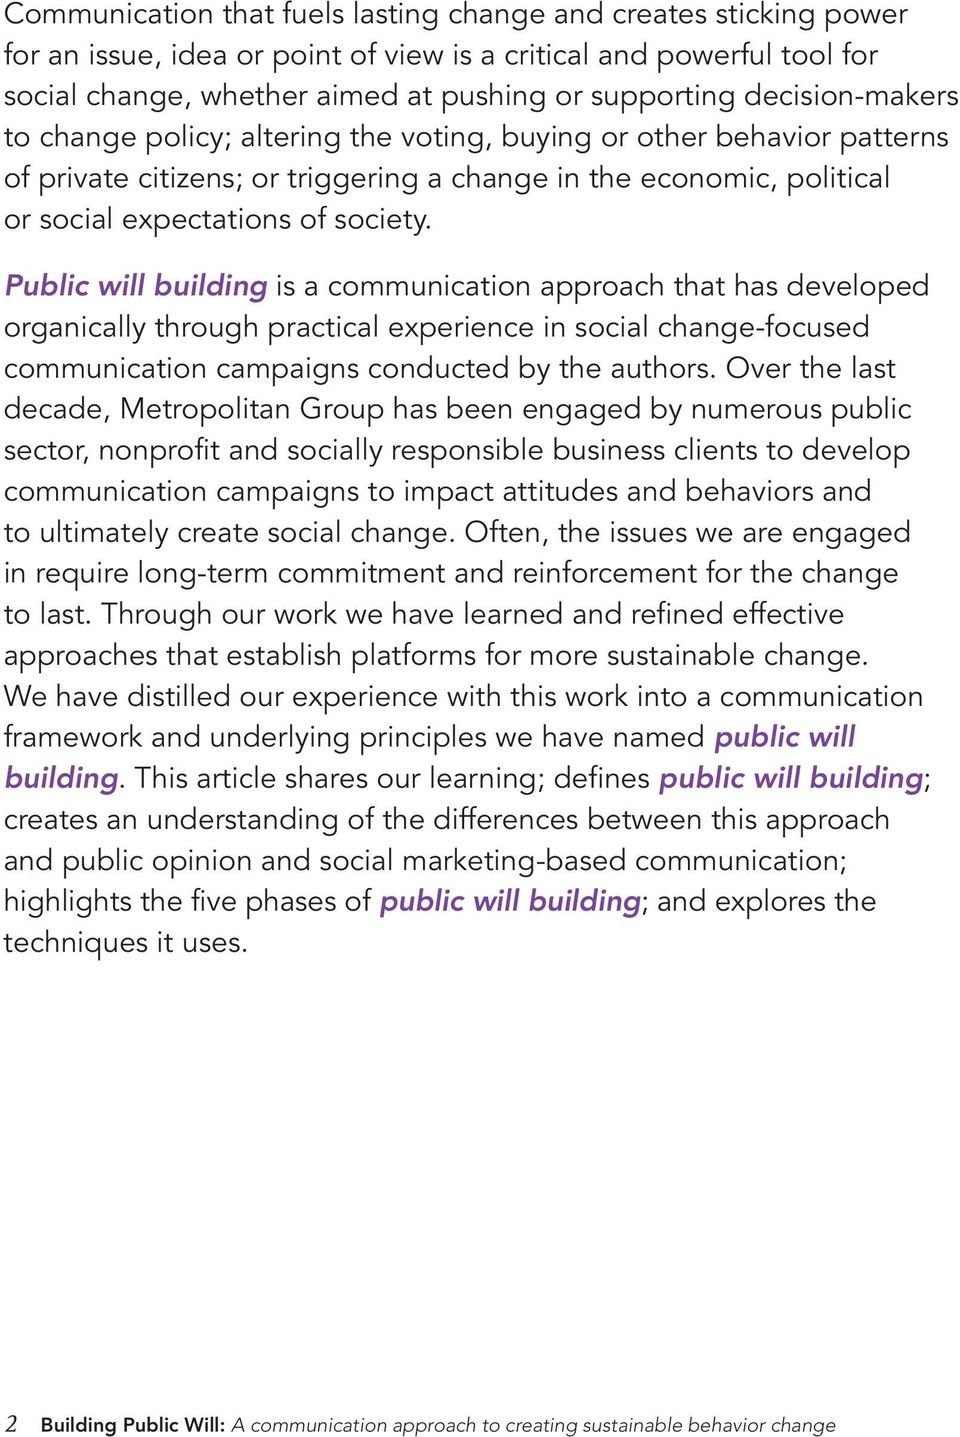 Public will building is a communication approach that has developed organically through practical experience in social change-focused communication campaigns conducted by the authors.